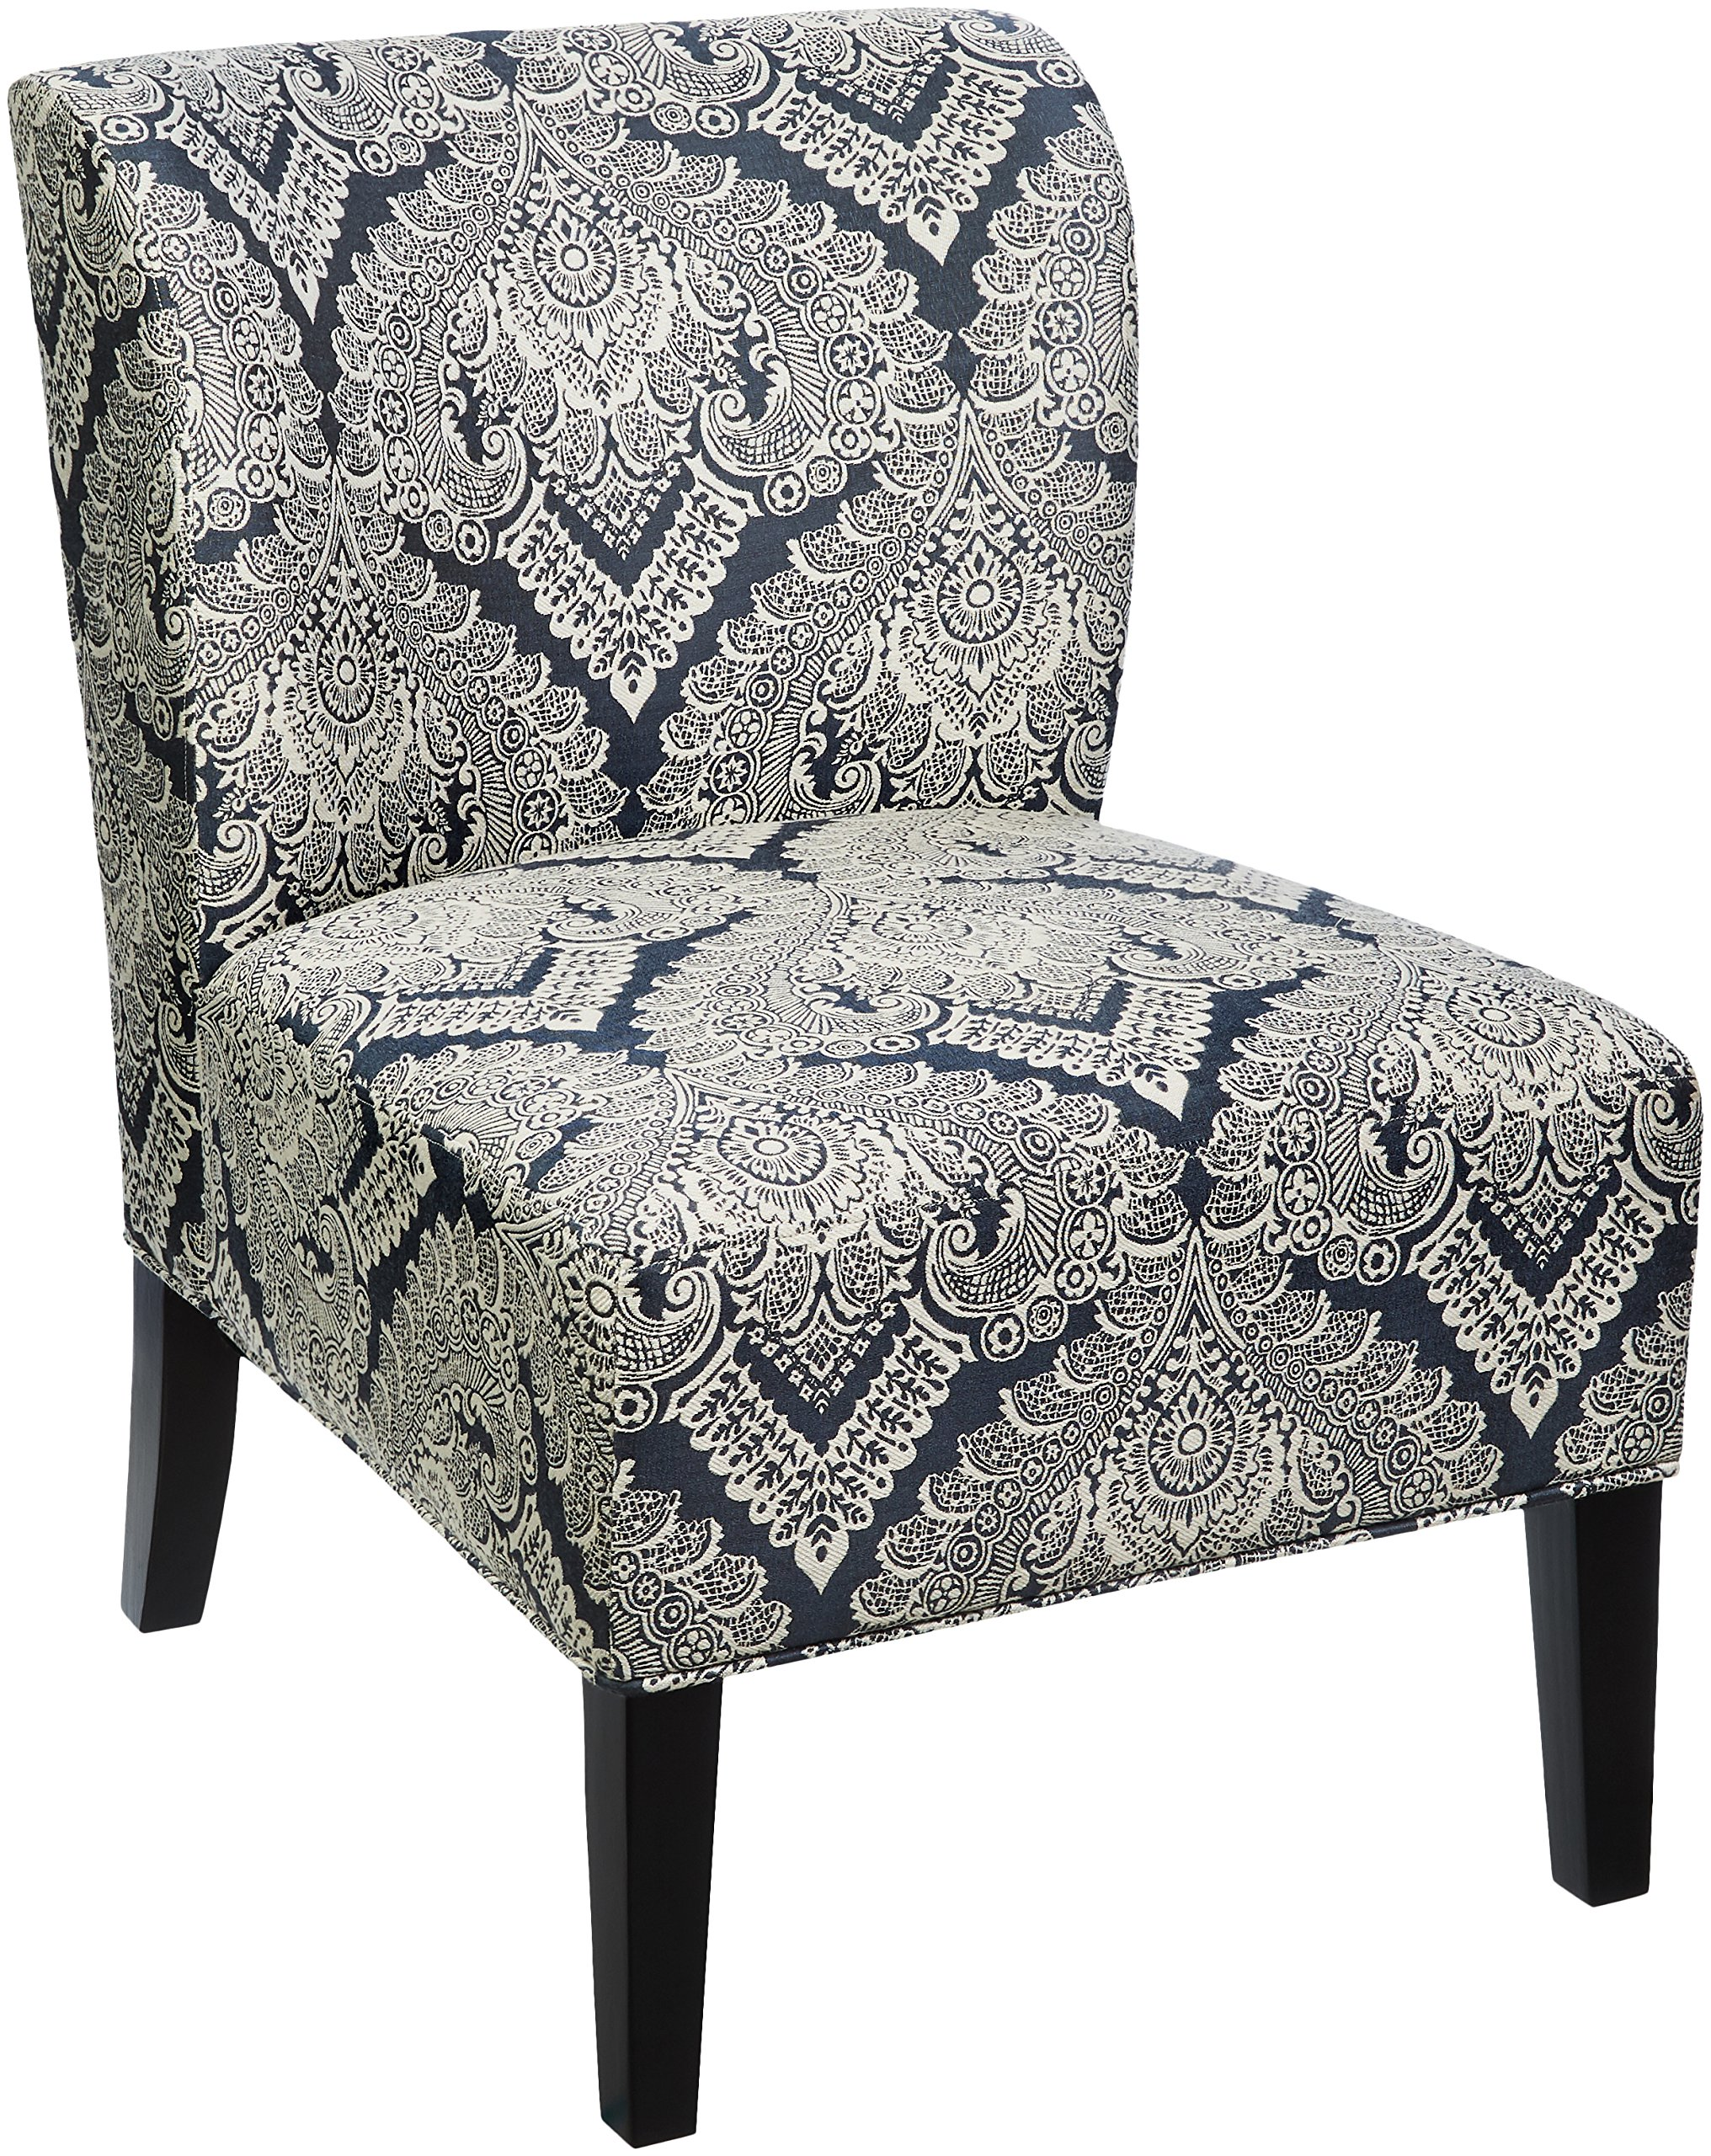 Blue Patterned Accent Chairs Free Patterns